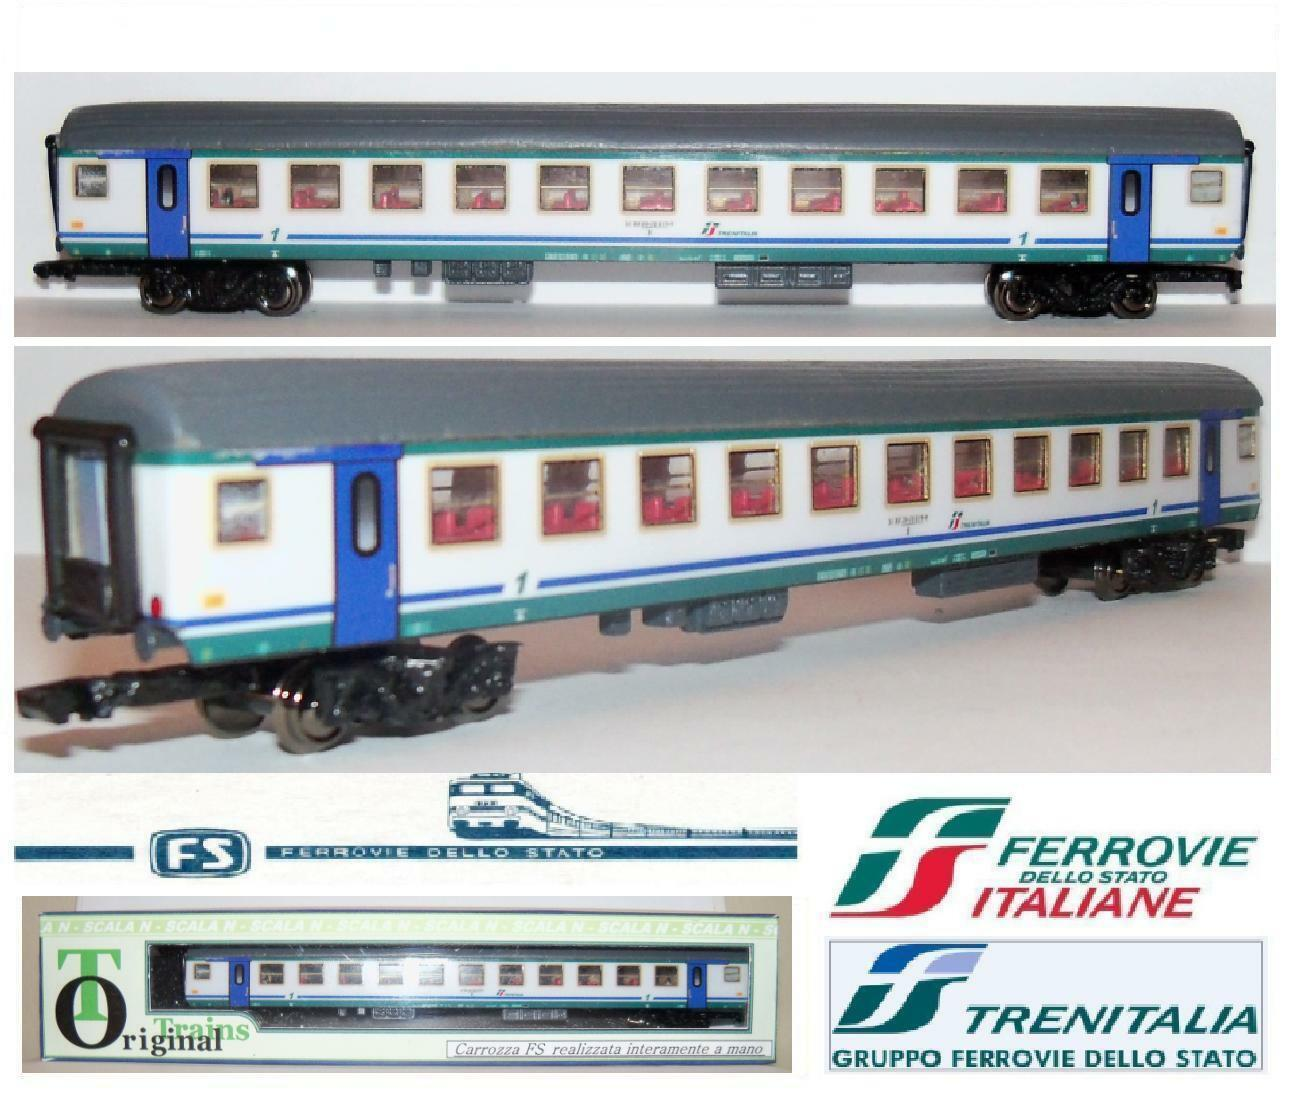 Carriage craft hand-made passengers 1a CL xmpr FS Trenitalia  Scale-N